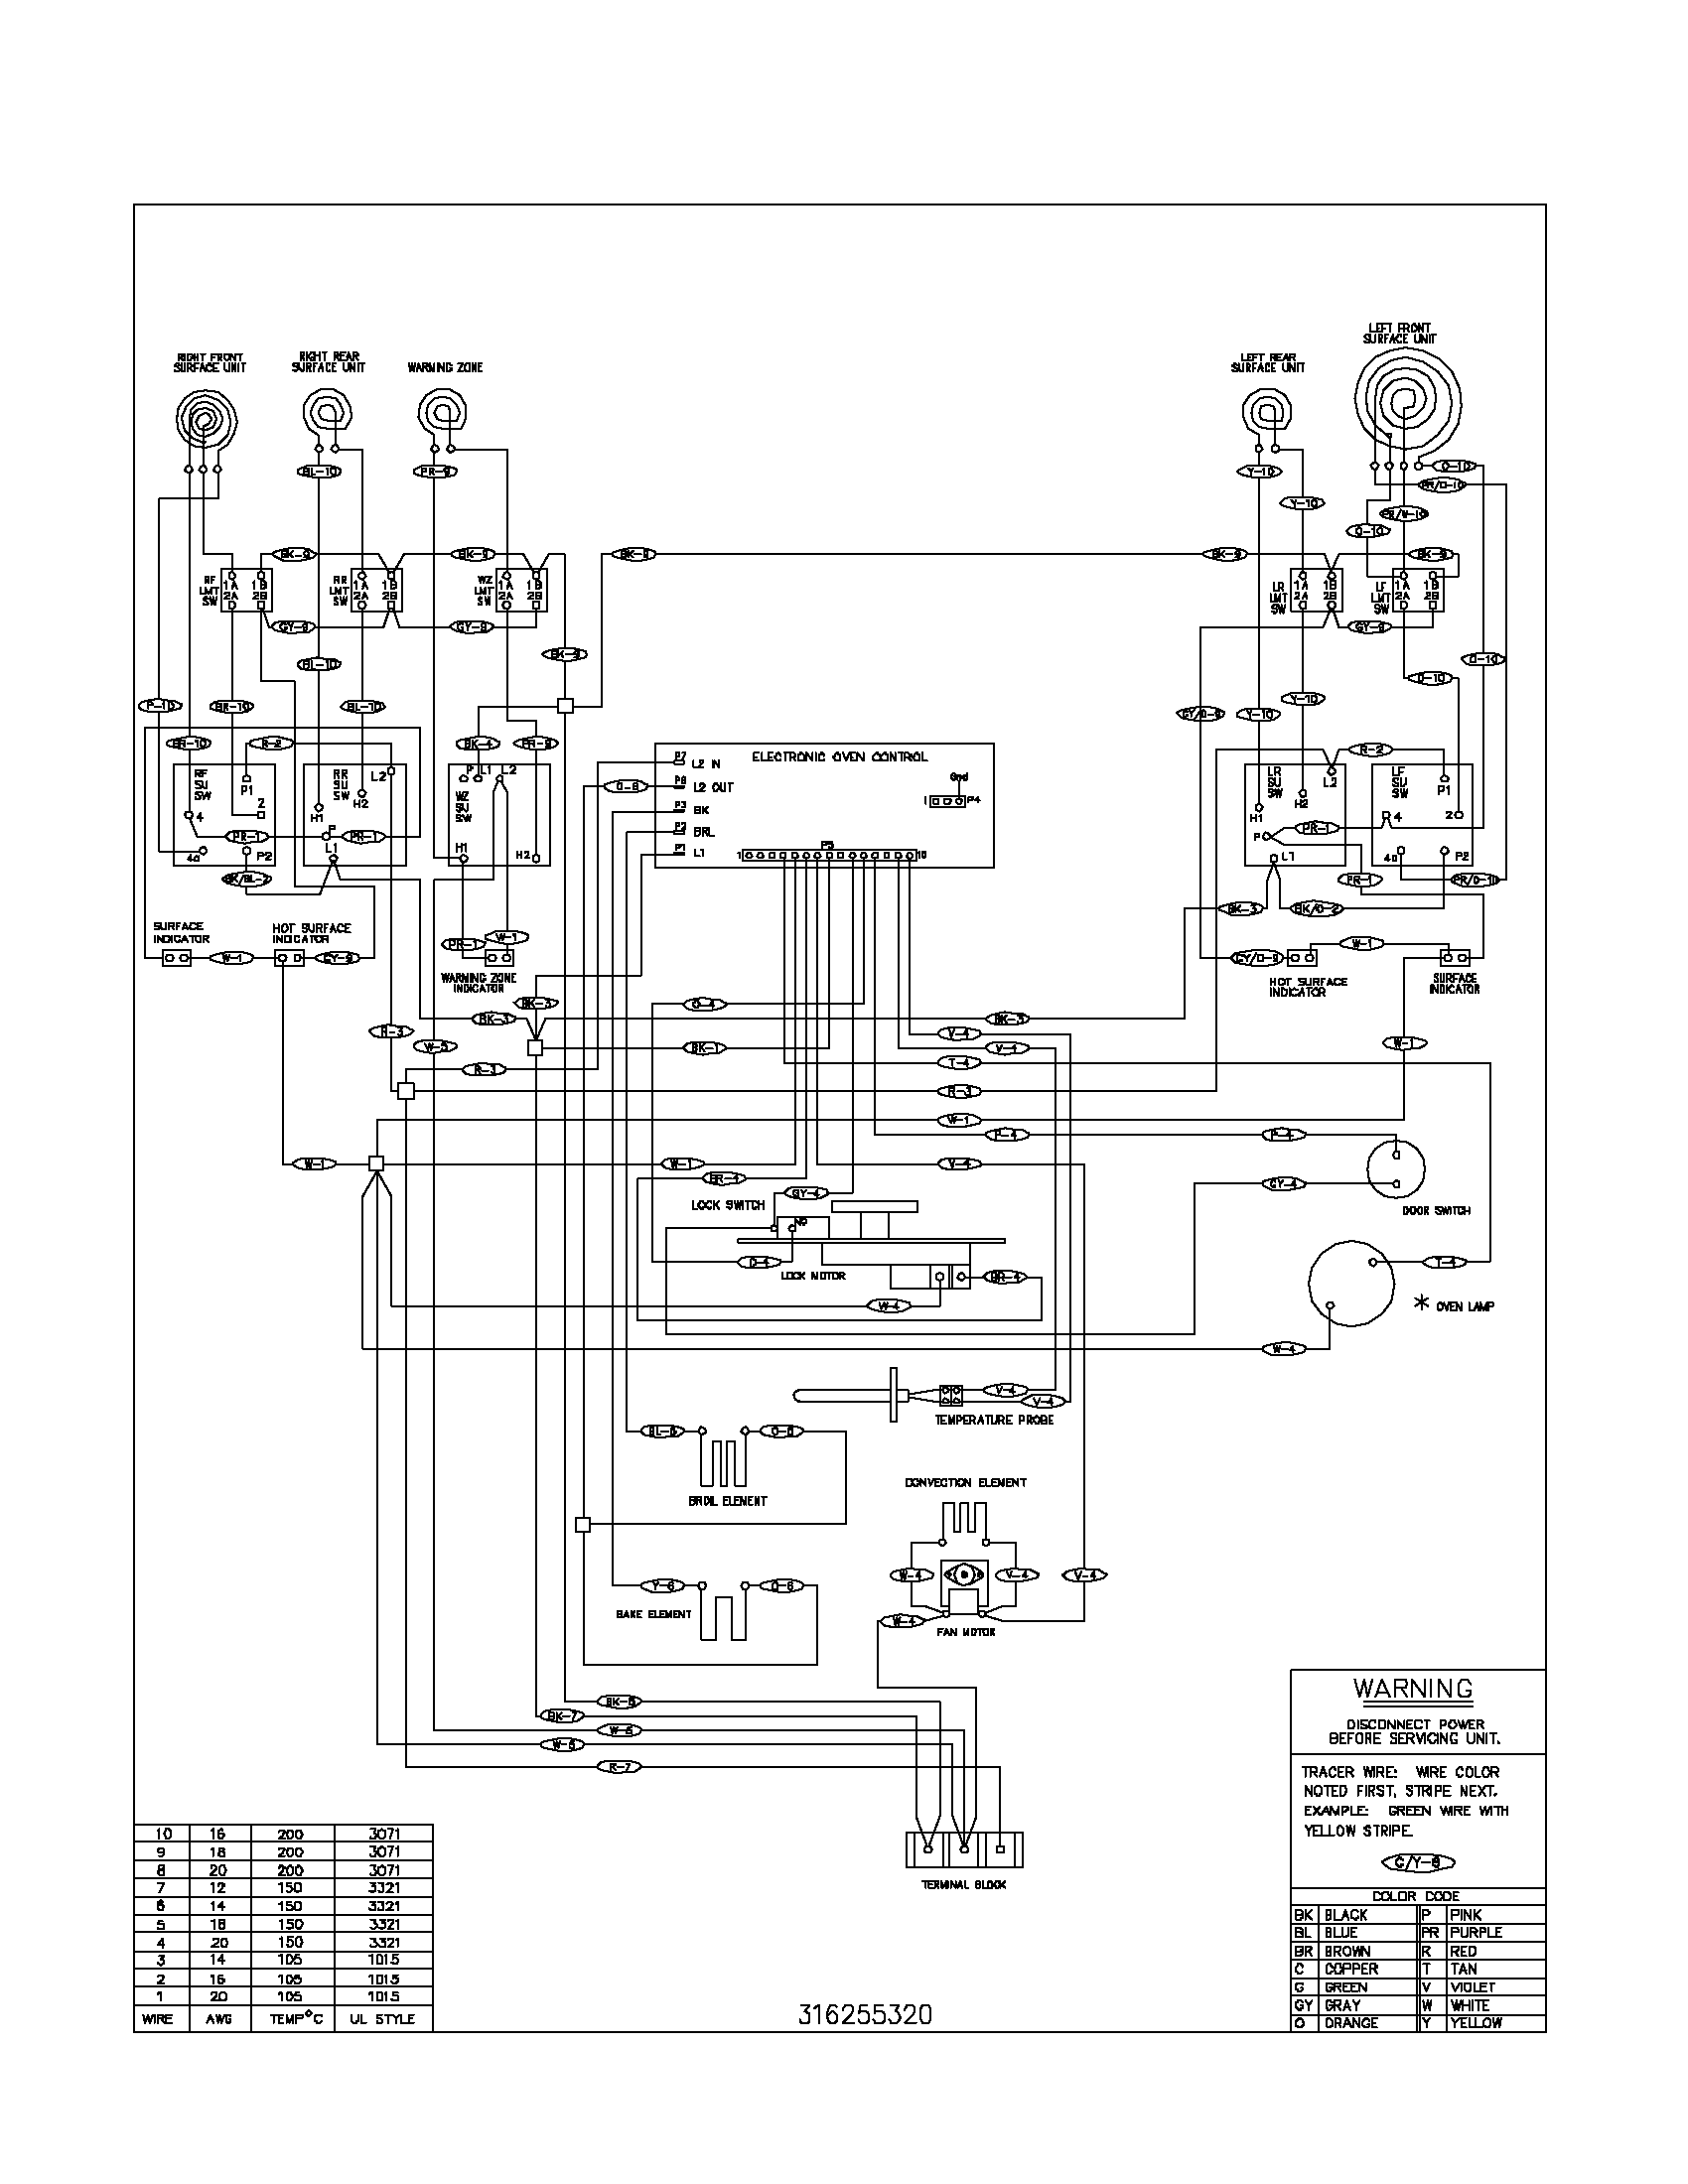 wiring diagram parts whirlpool fefl88acc electric range timer stove clocks and stove plate wiring diagram issues at soozxer.org